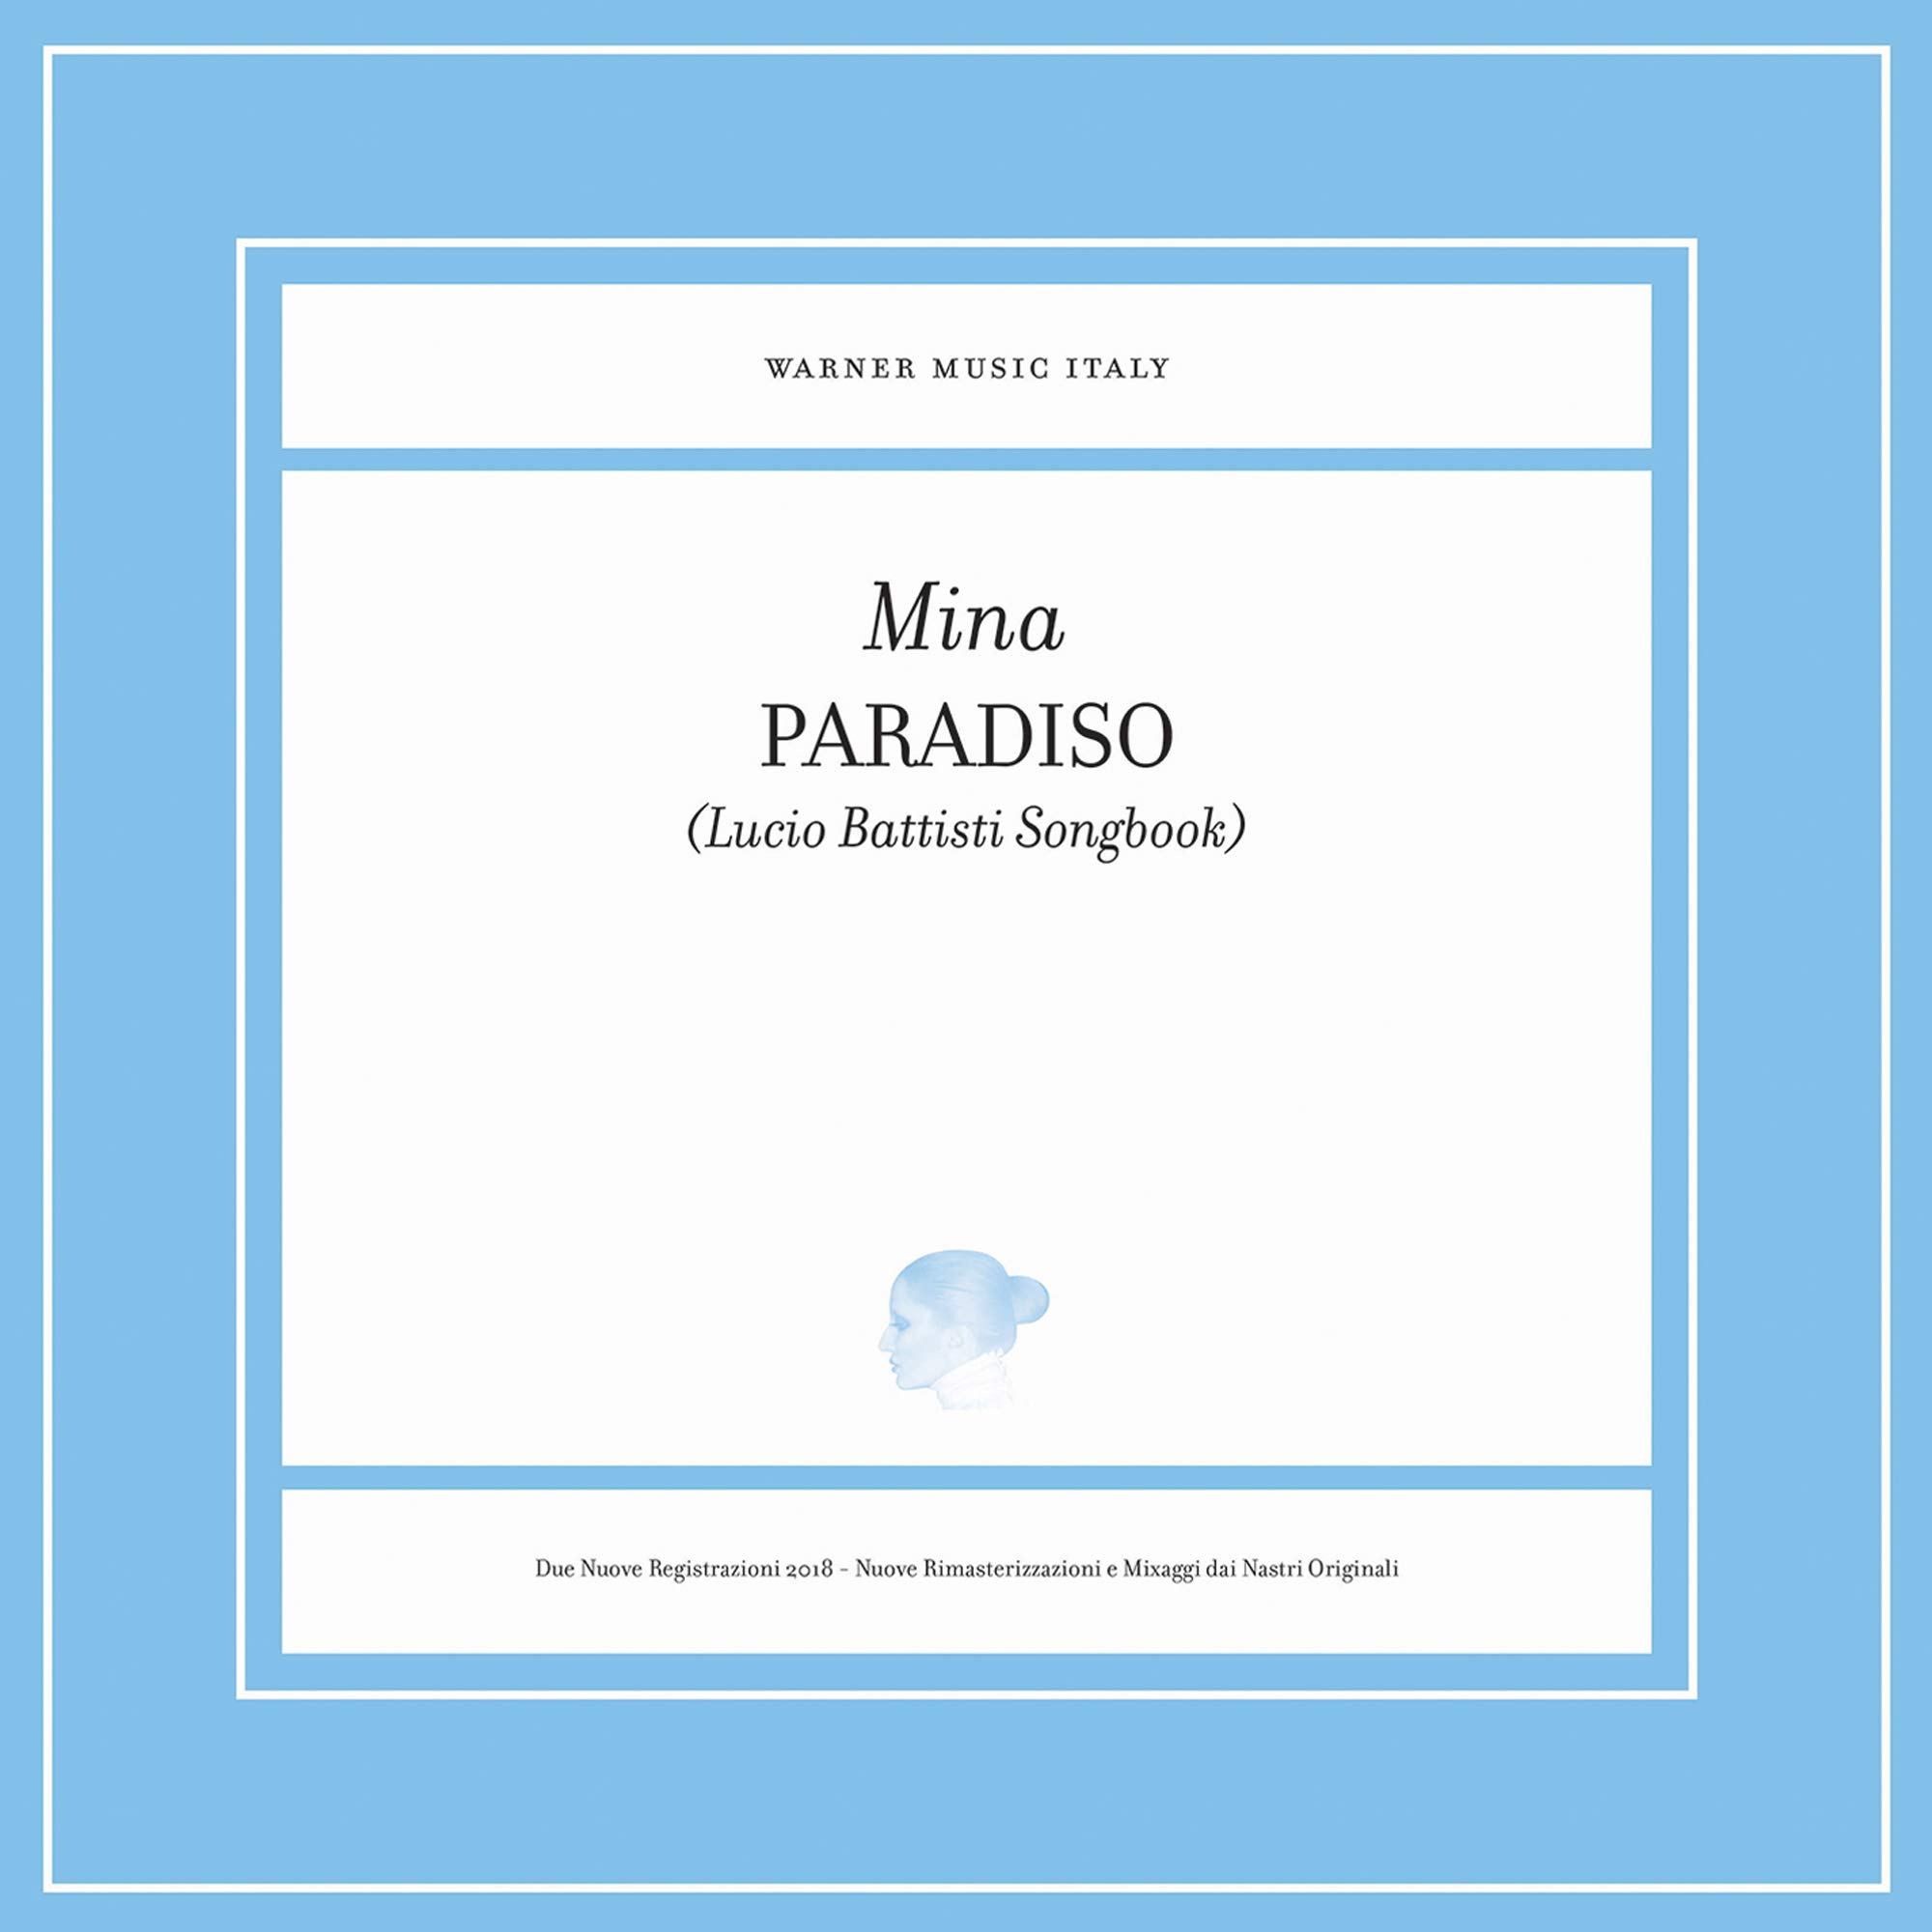 CD : Mina - Paradiso: Lucio Battisti Songbook (CD)